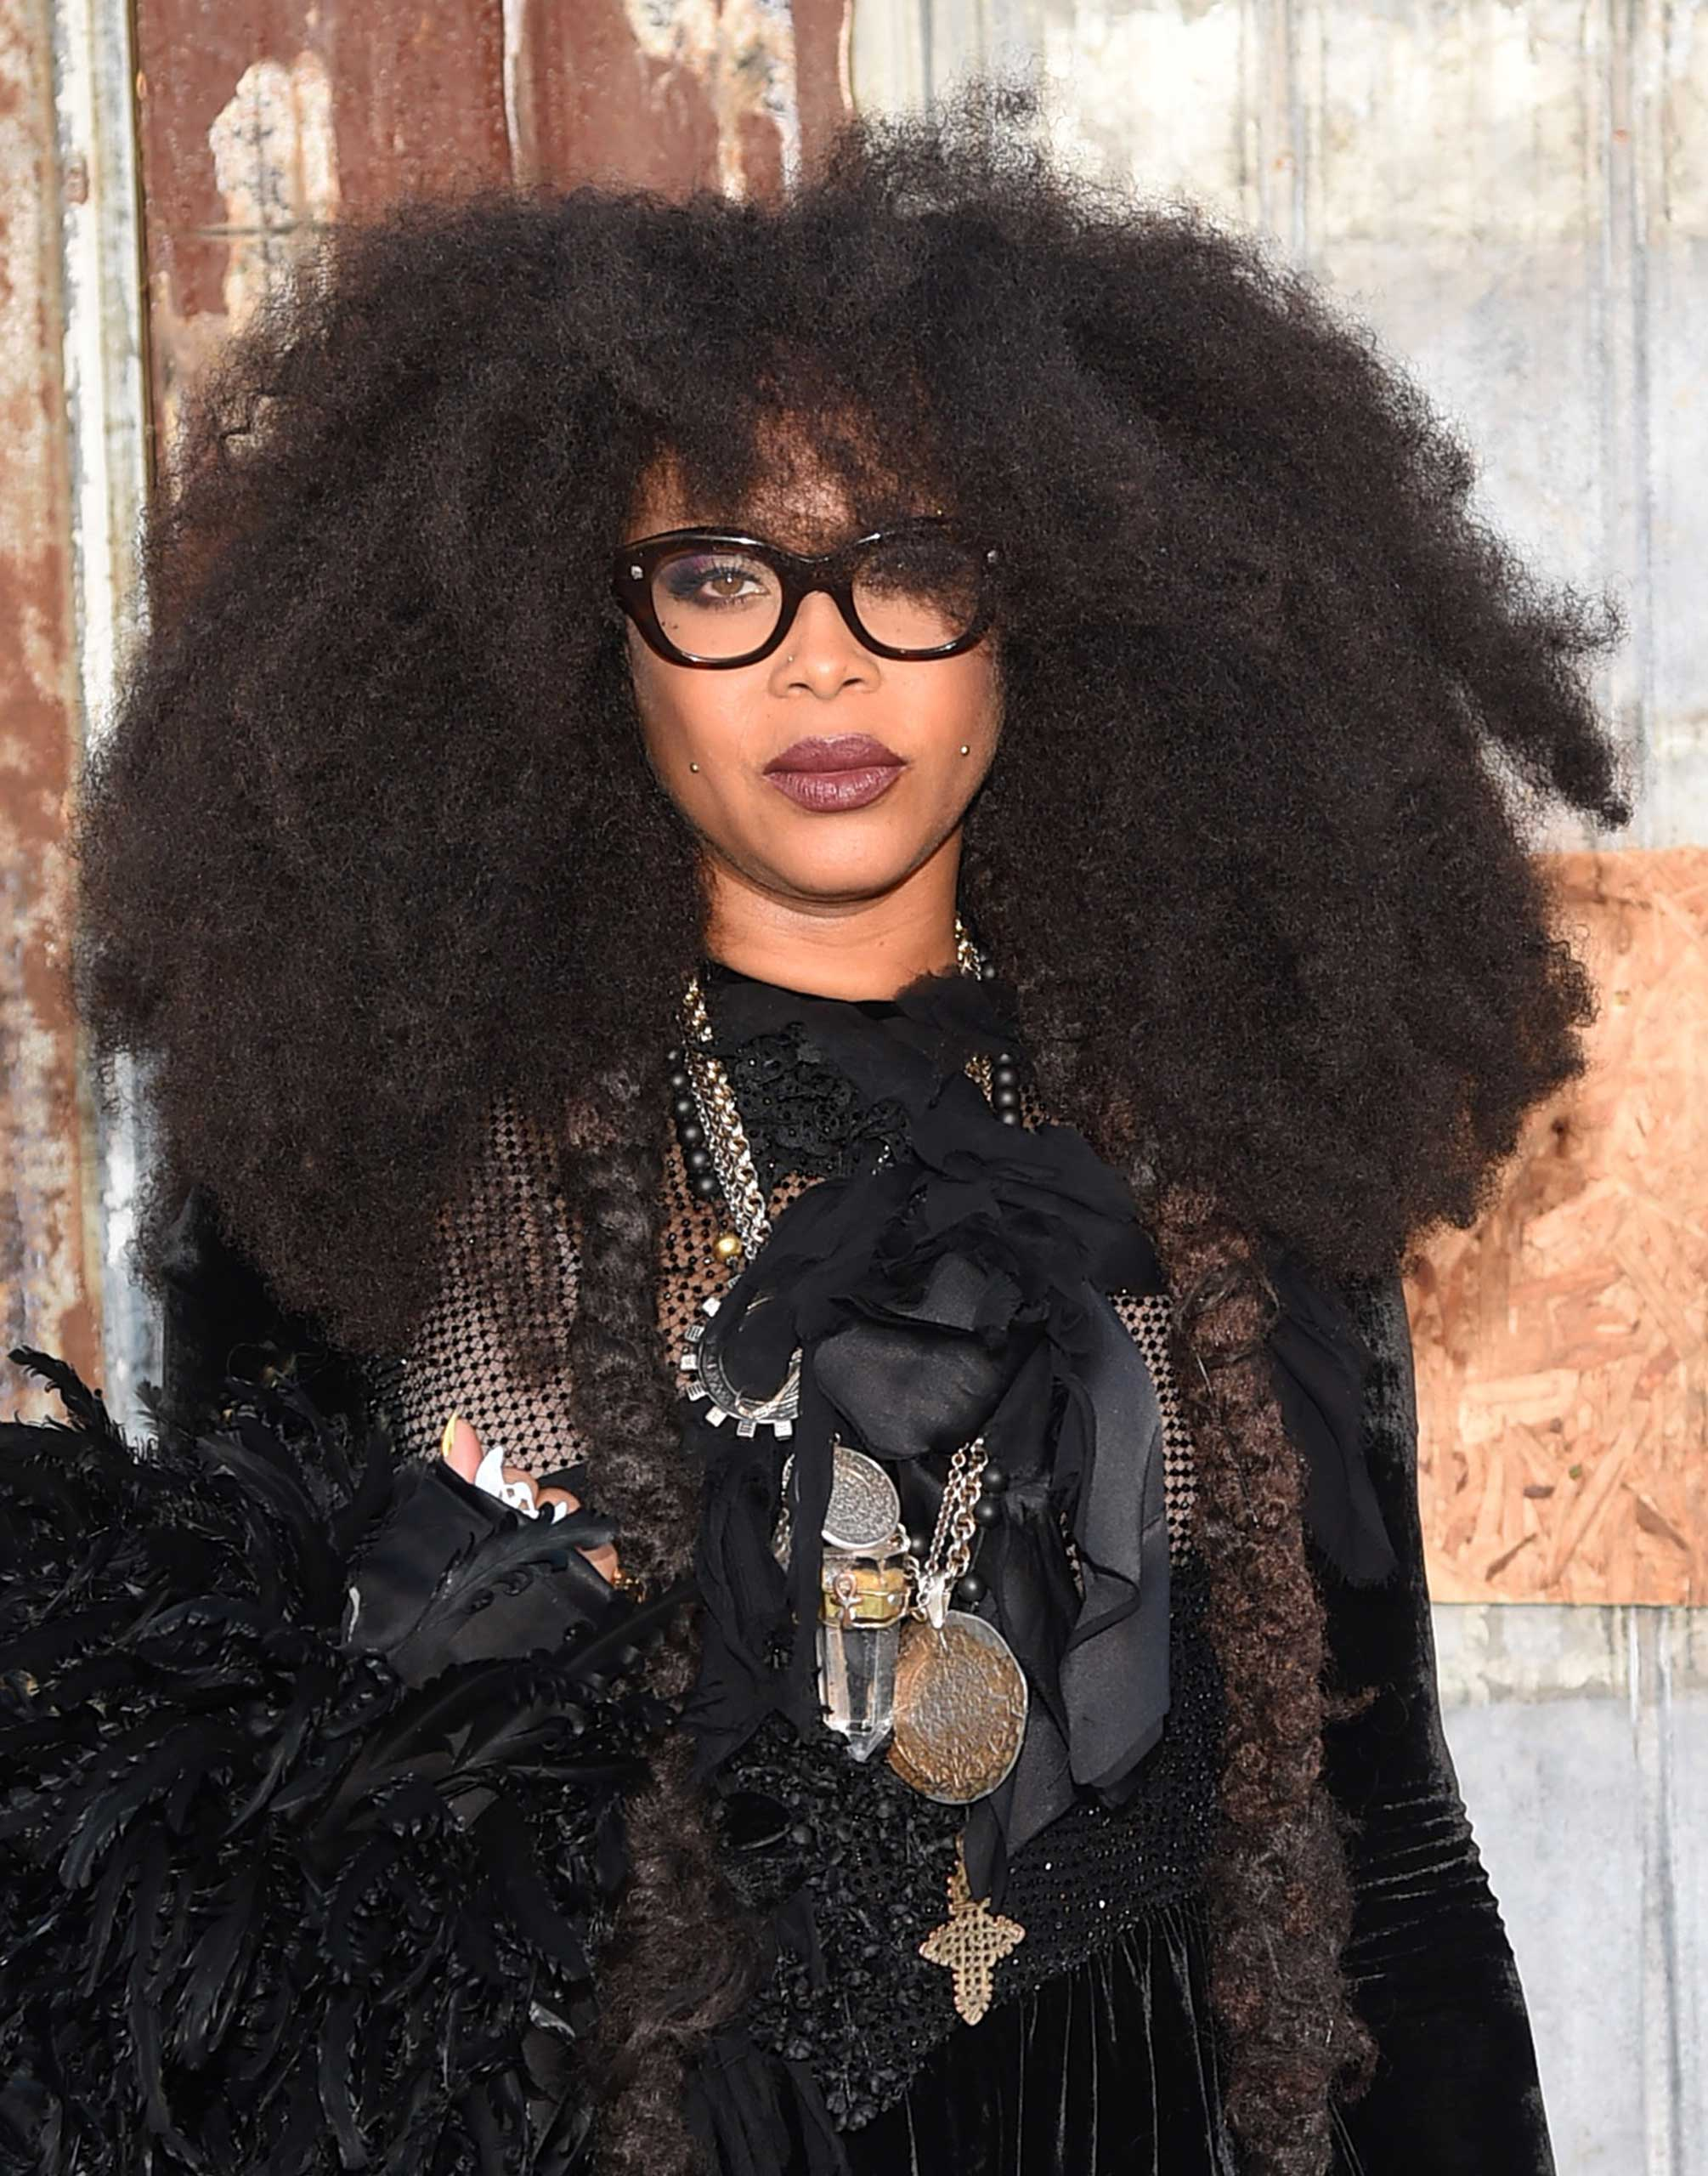 Singer-songwriter Erykah Badu attends the Givenchy fashion show during Spring 2016 New York Fashion Week at Pier 26 at Hudson River Park in New York City on Sept. 11, 2015.